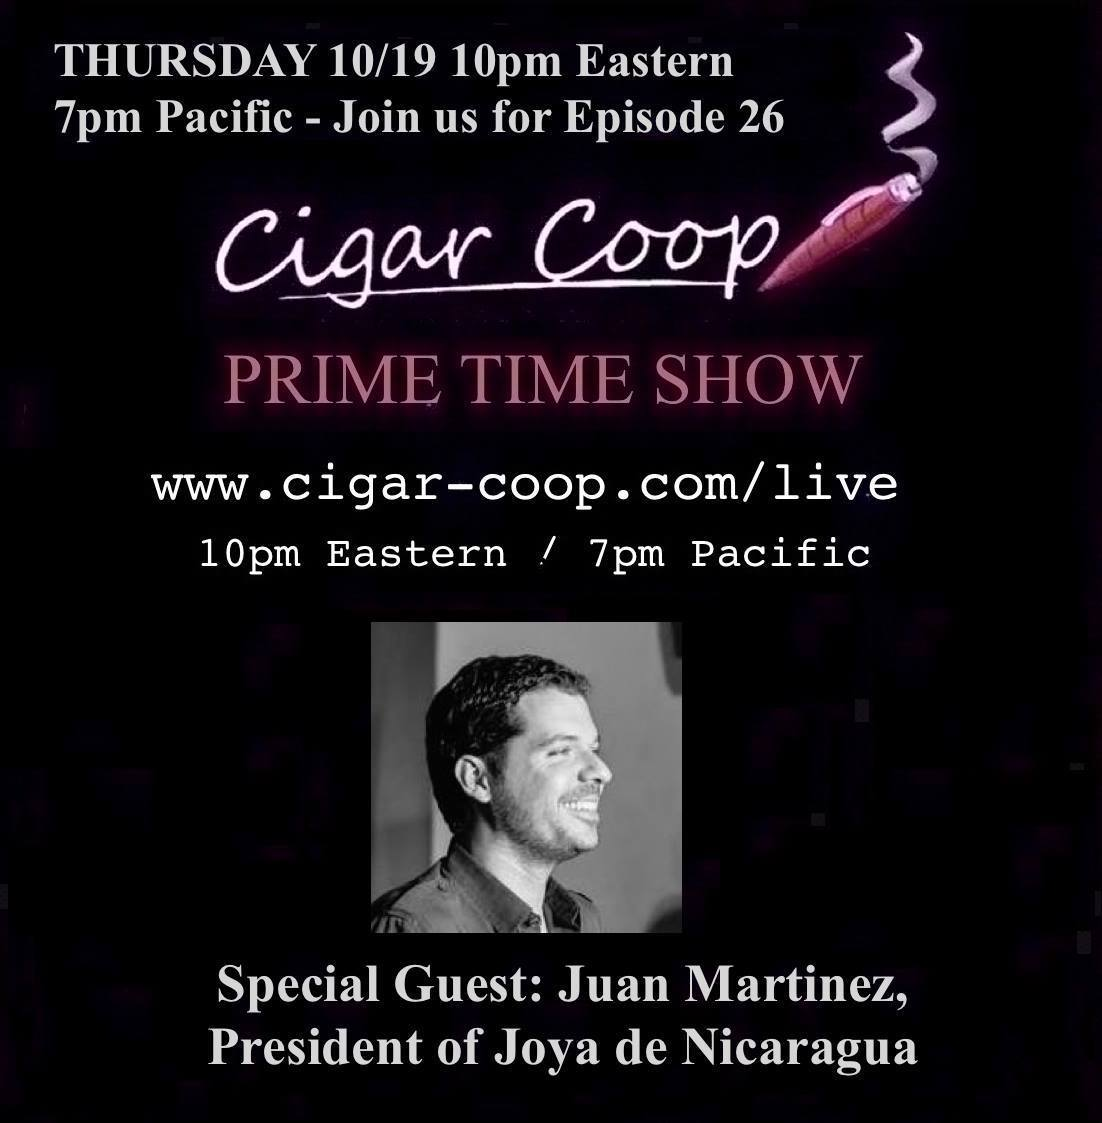 Announcement: Prime Time Show Episode 26: 10/19/17 10pm Eastern, 7pm Pacific